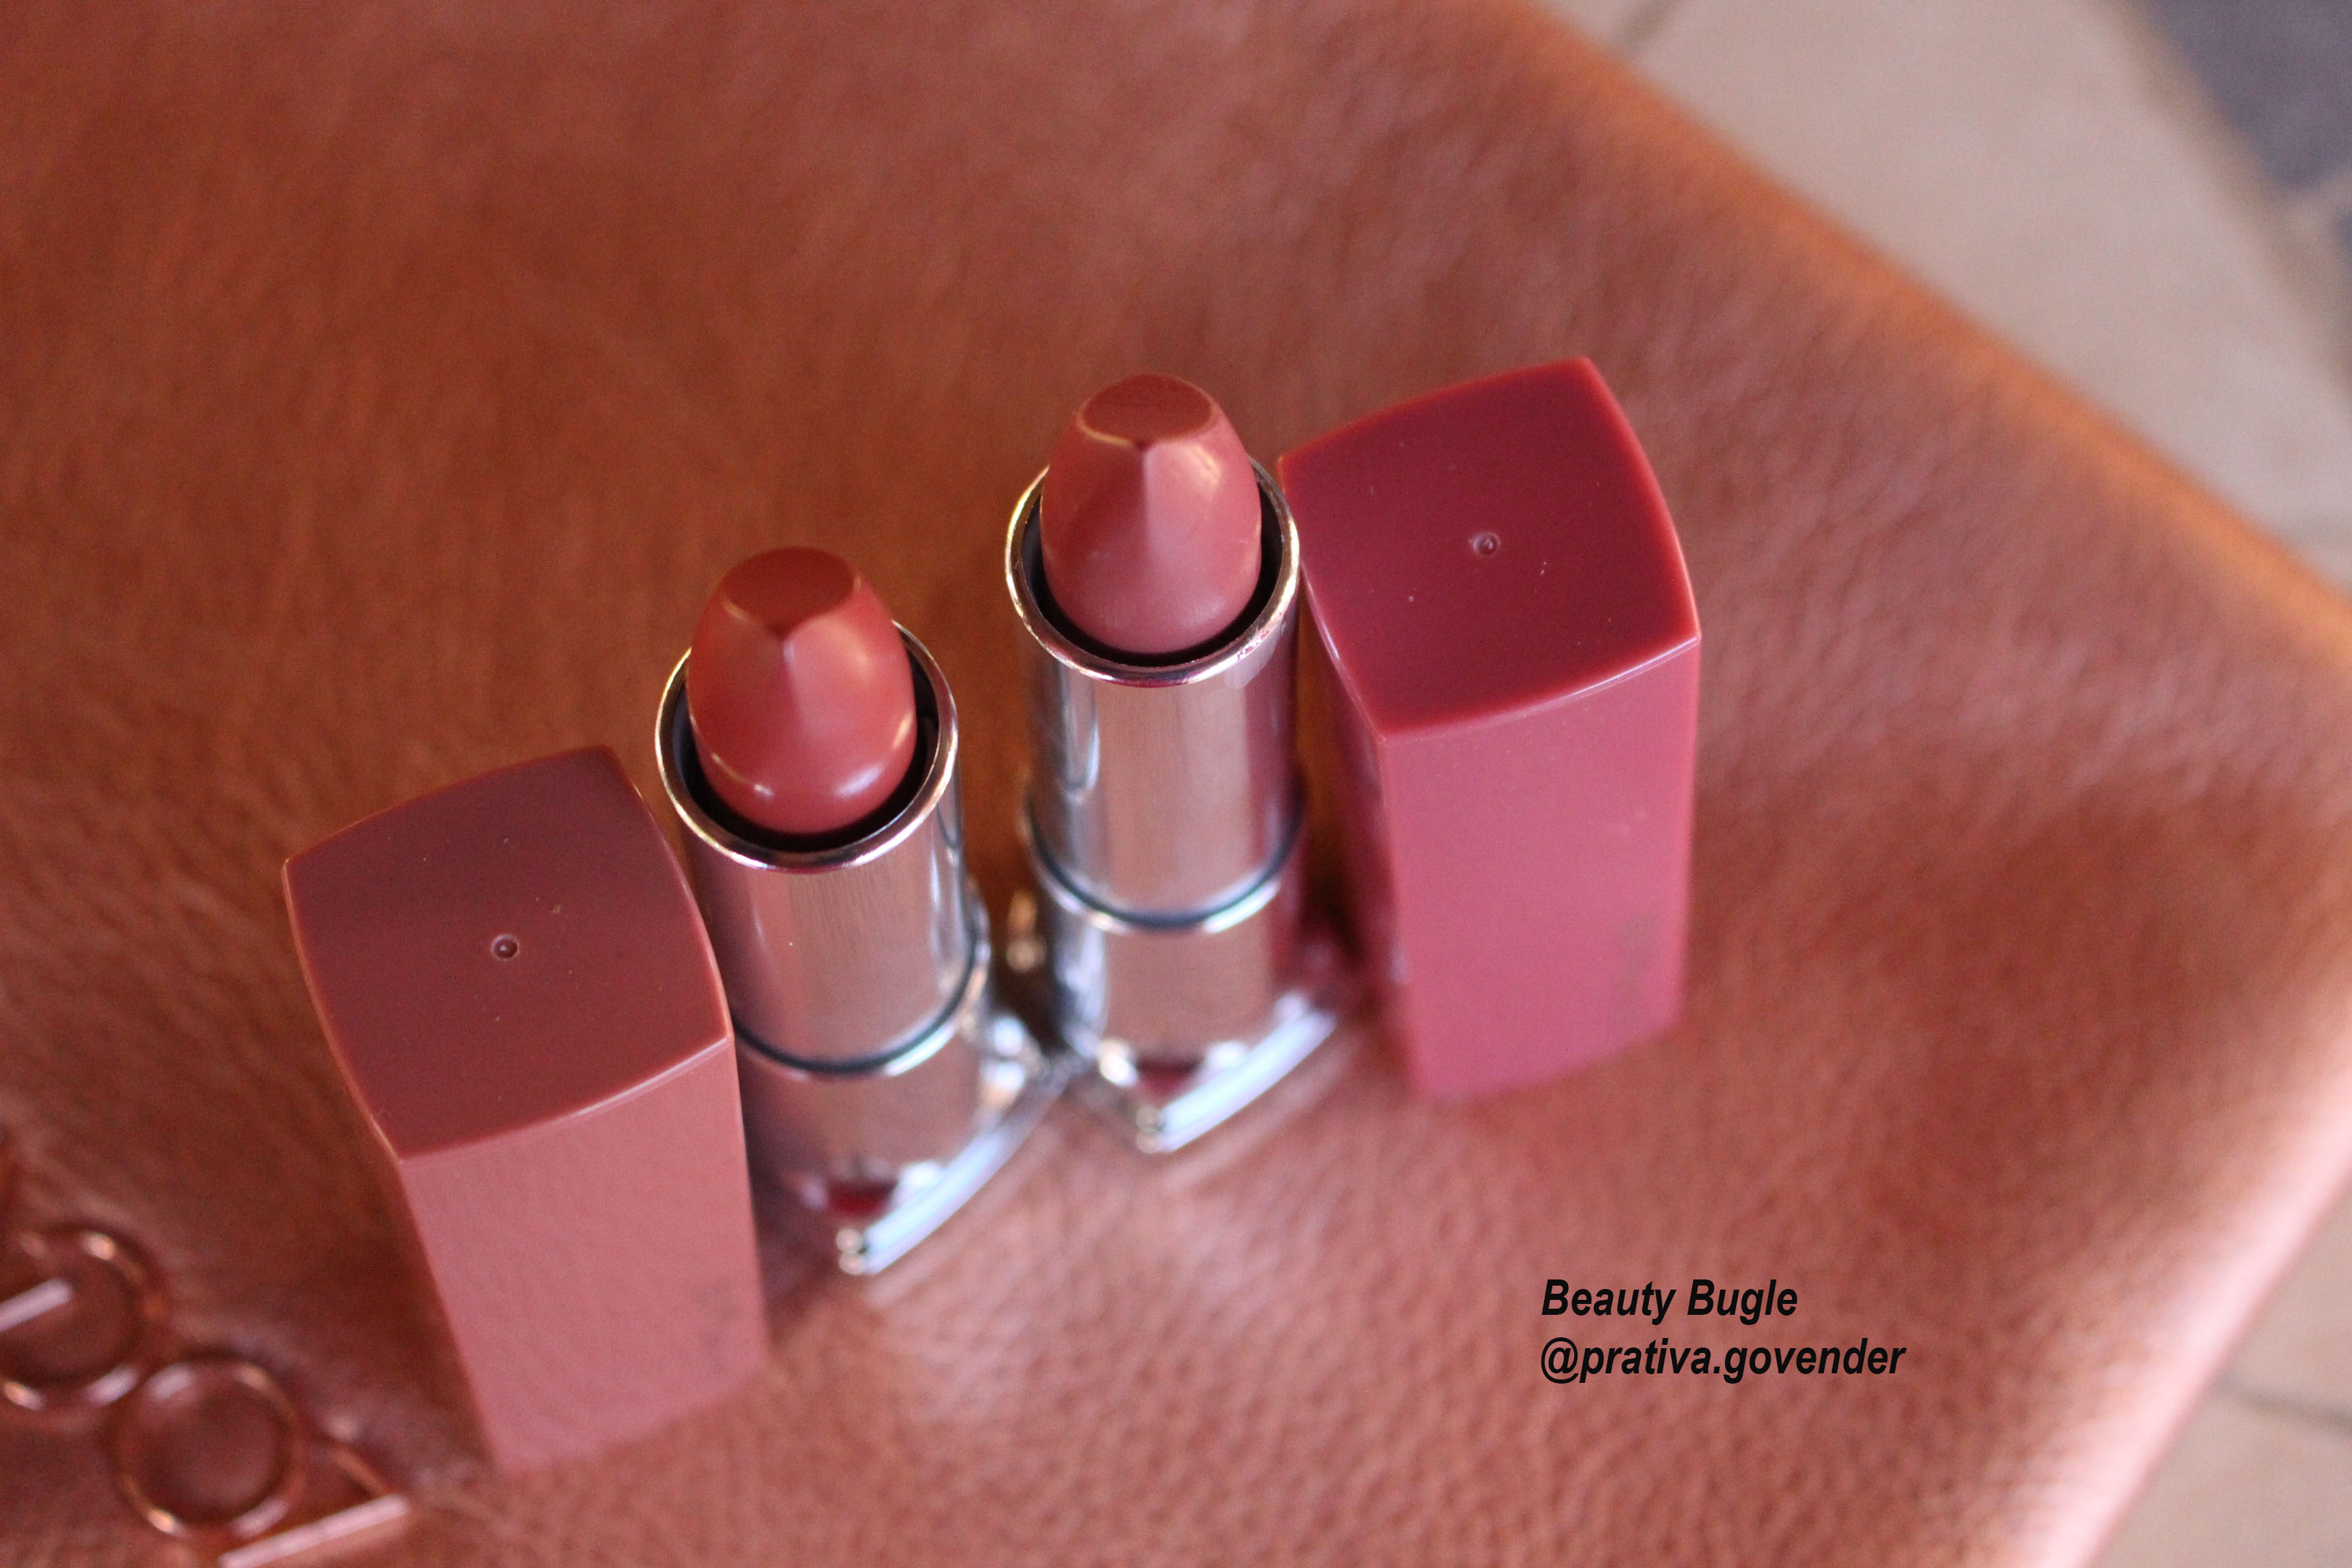 Maybelline Made For All lipsticks – Brown Skin Review and Swatches